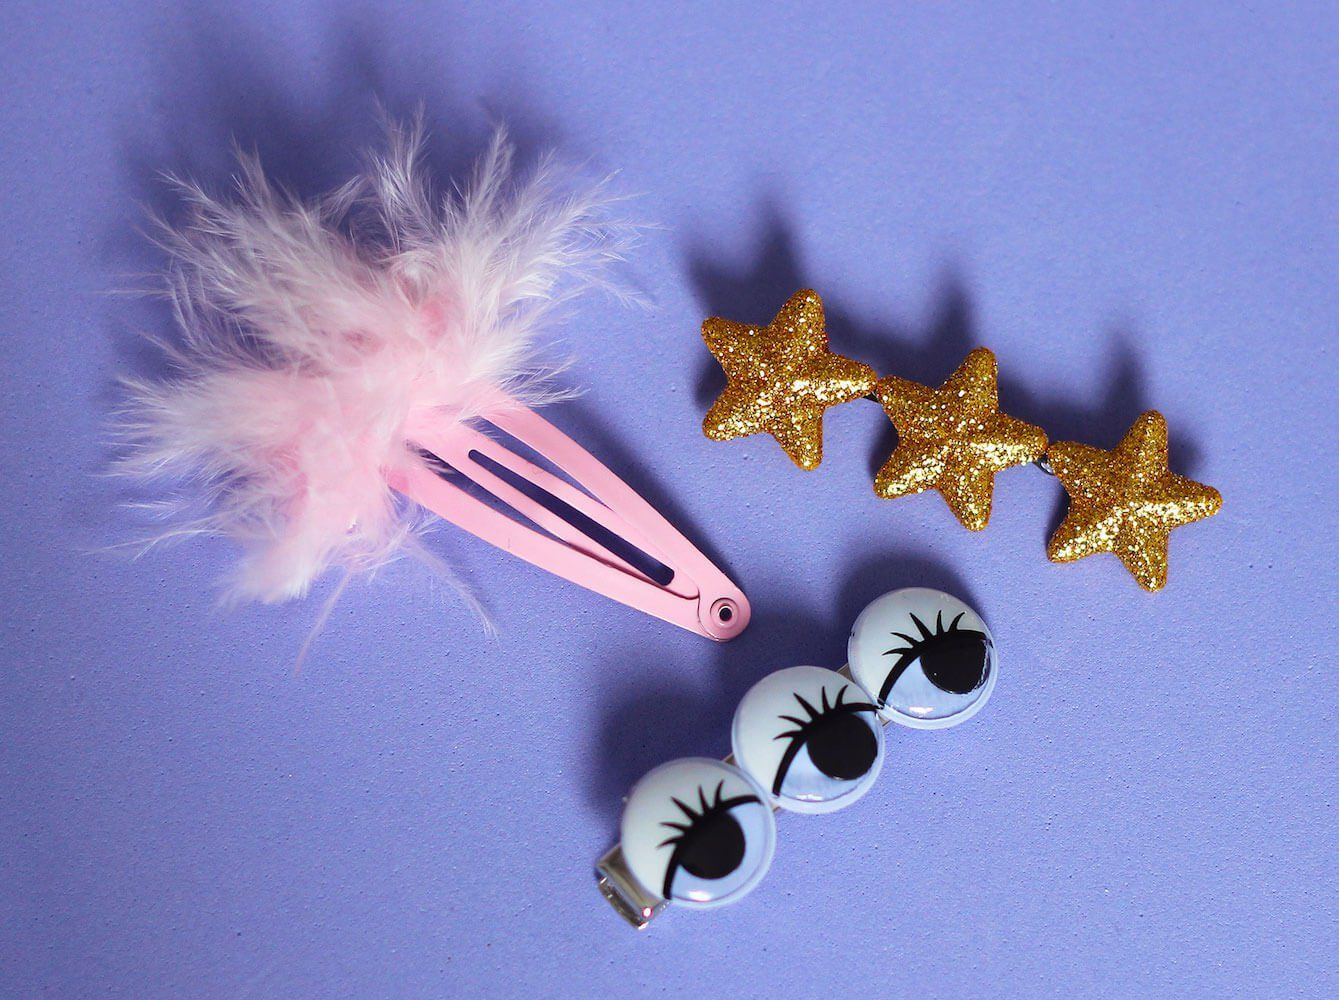 Glitz and glam for your strands.